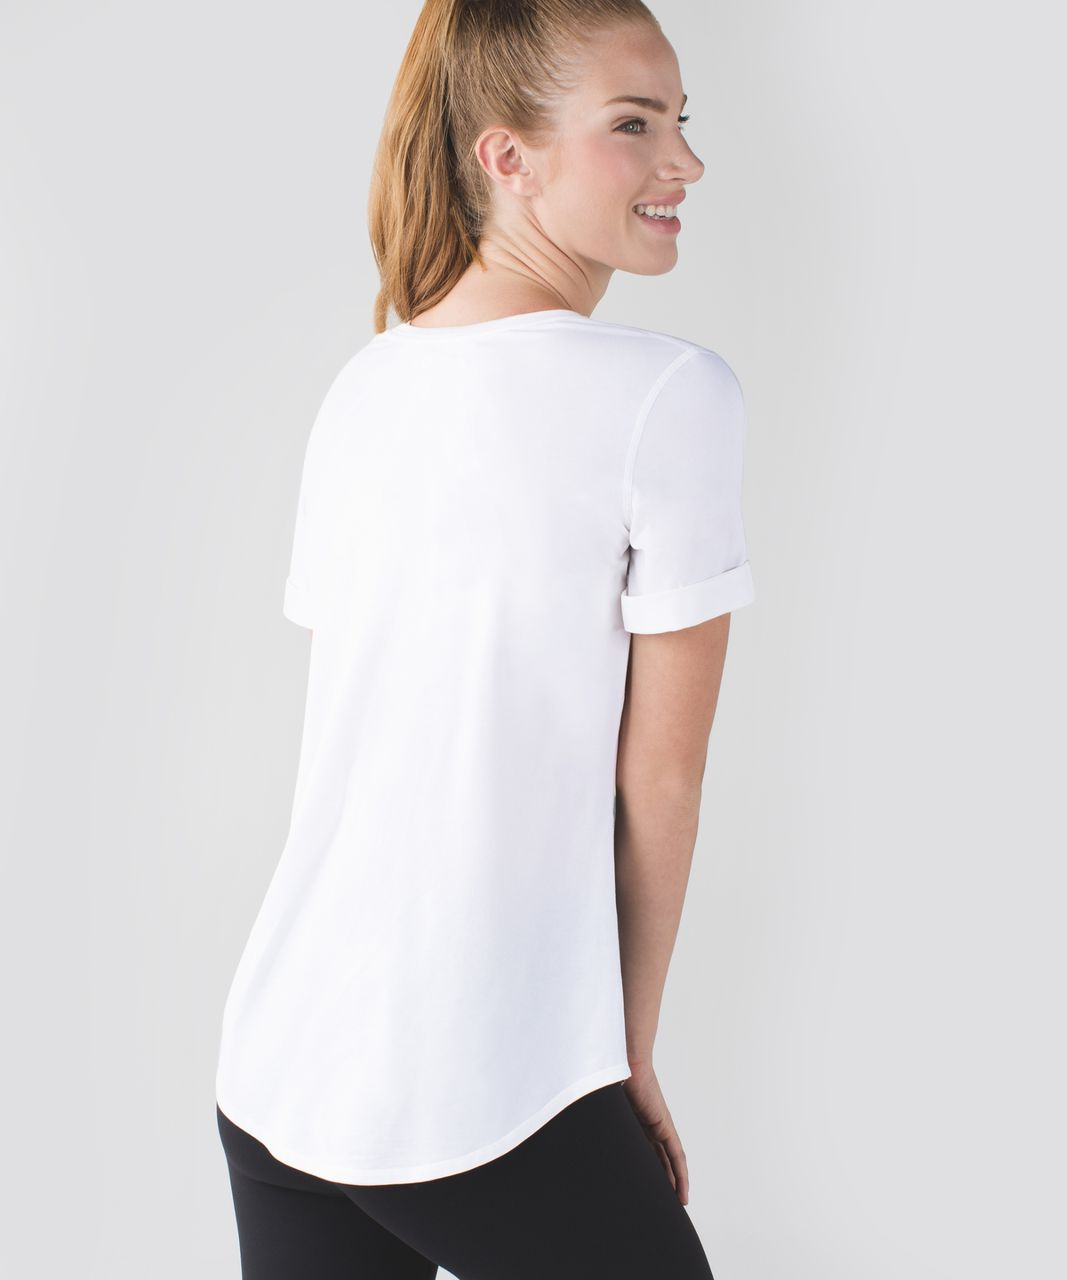 Lululemon Love Tee II - White / Prickly Pear Multi